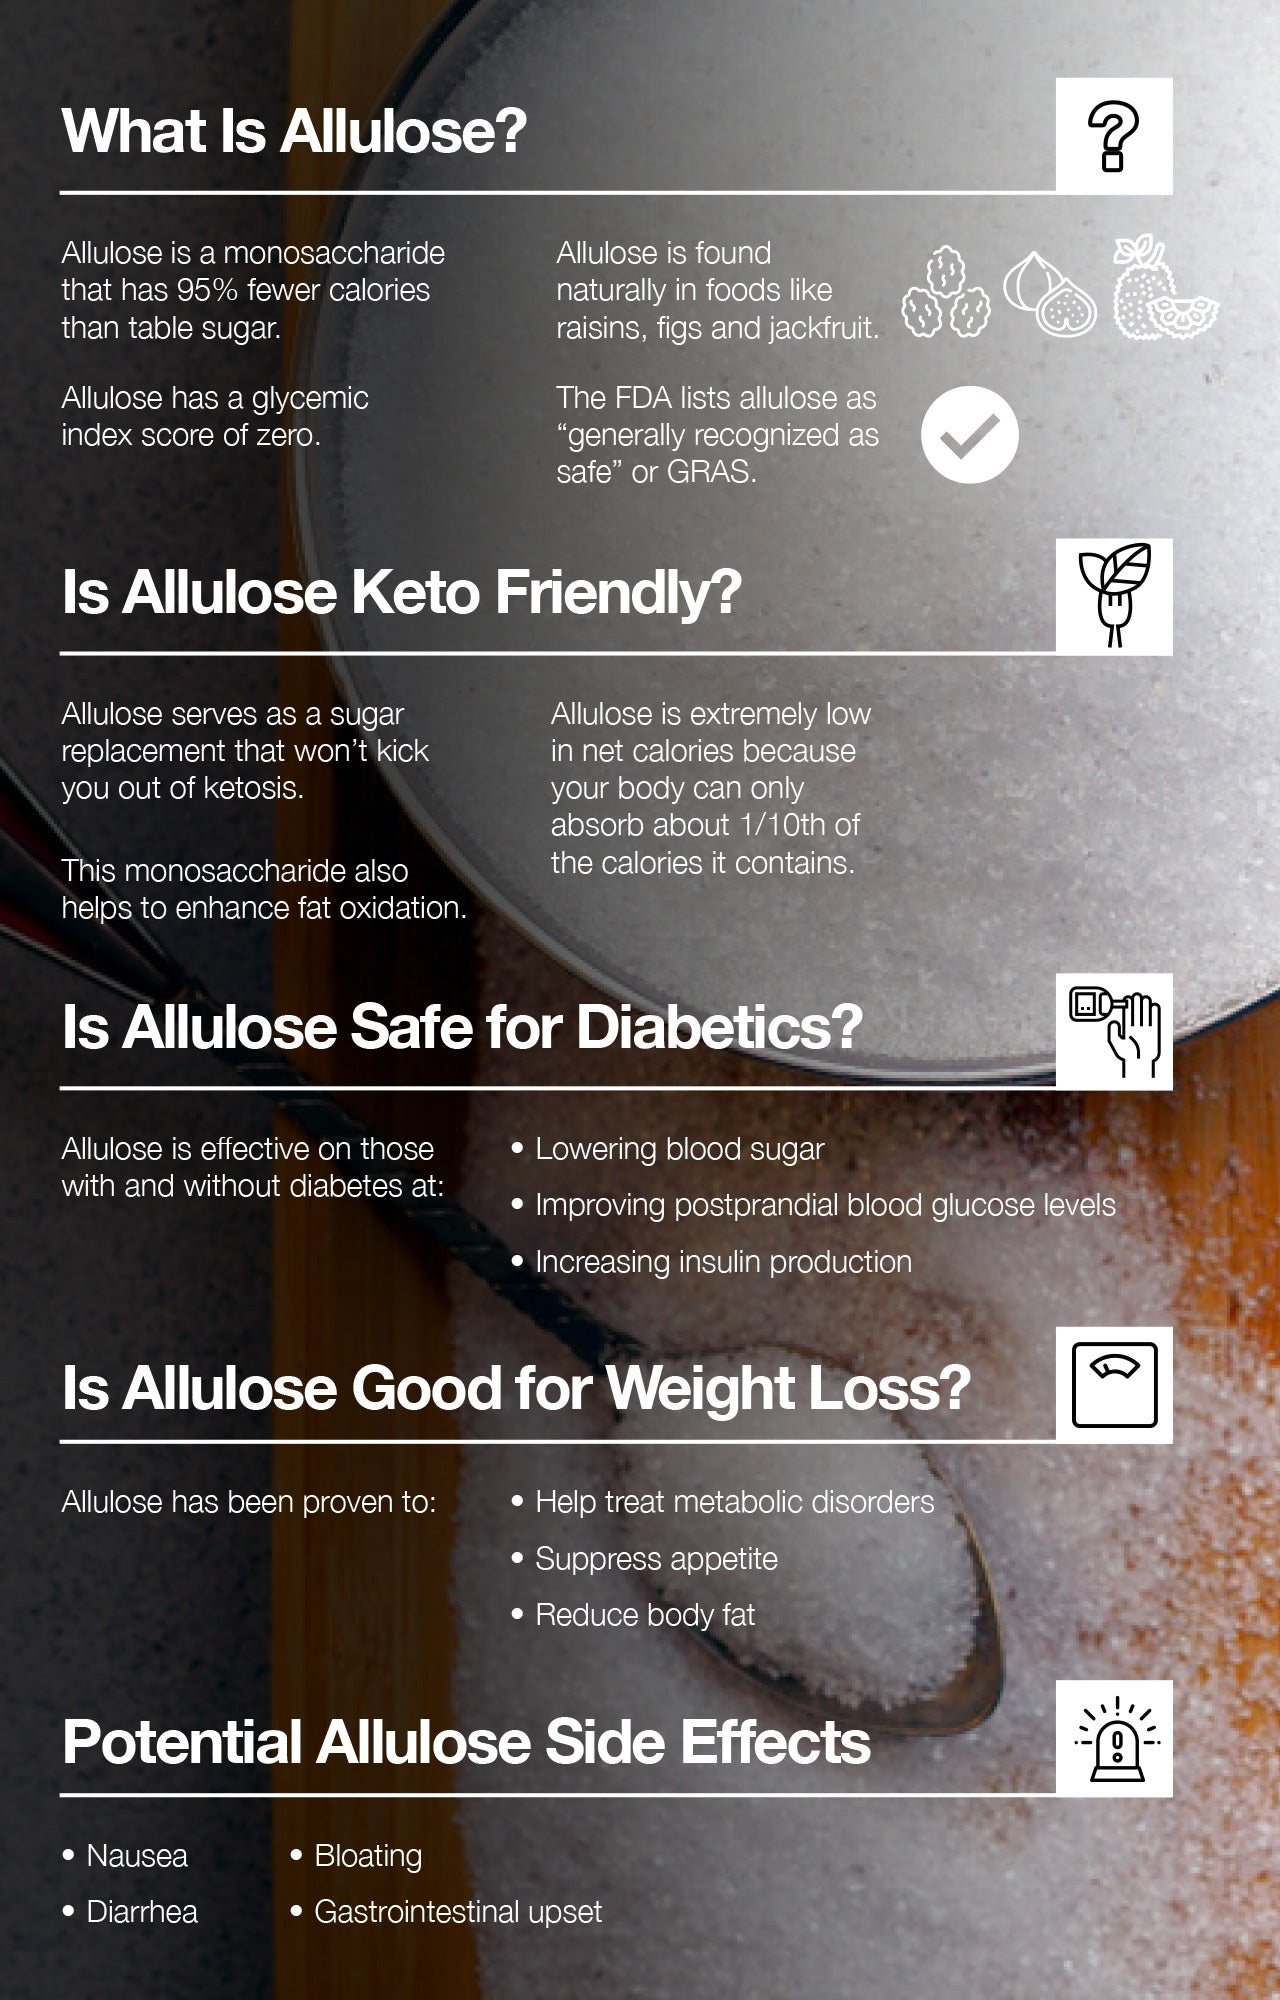 What Is Allulose?